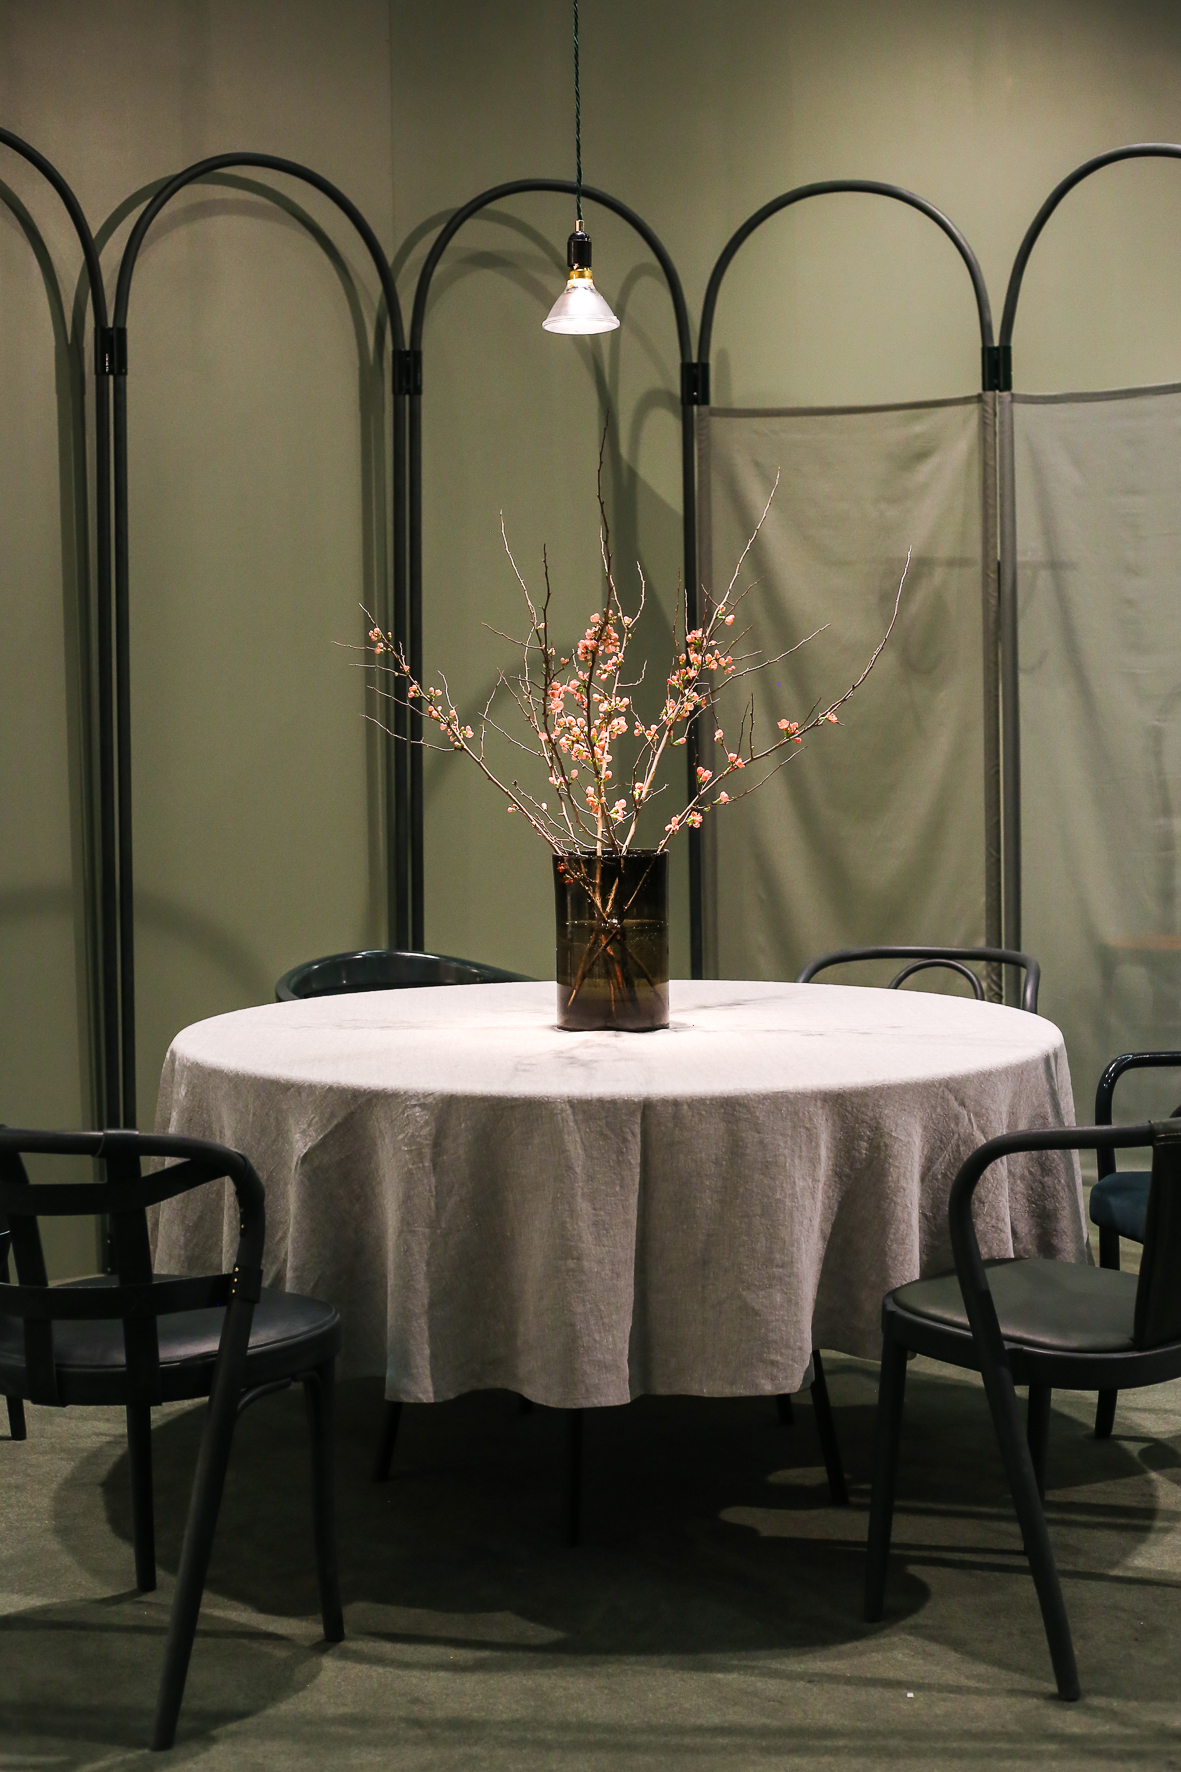 Trendspaning_Stockholm_swedish_furniture_fair_HannaWendelbo-32.jpg